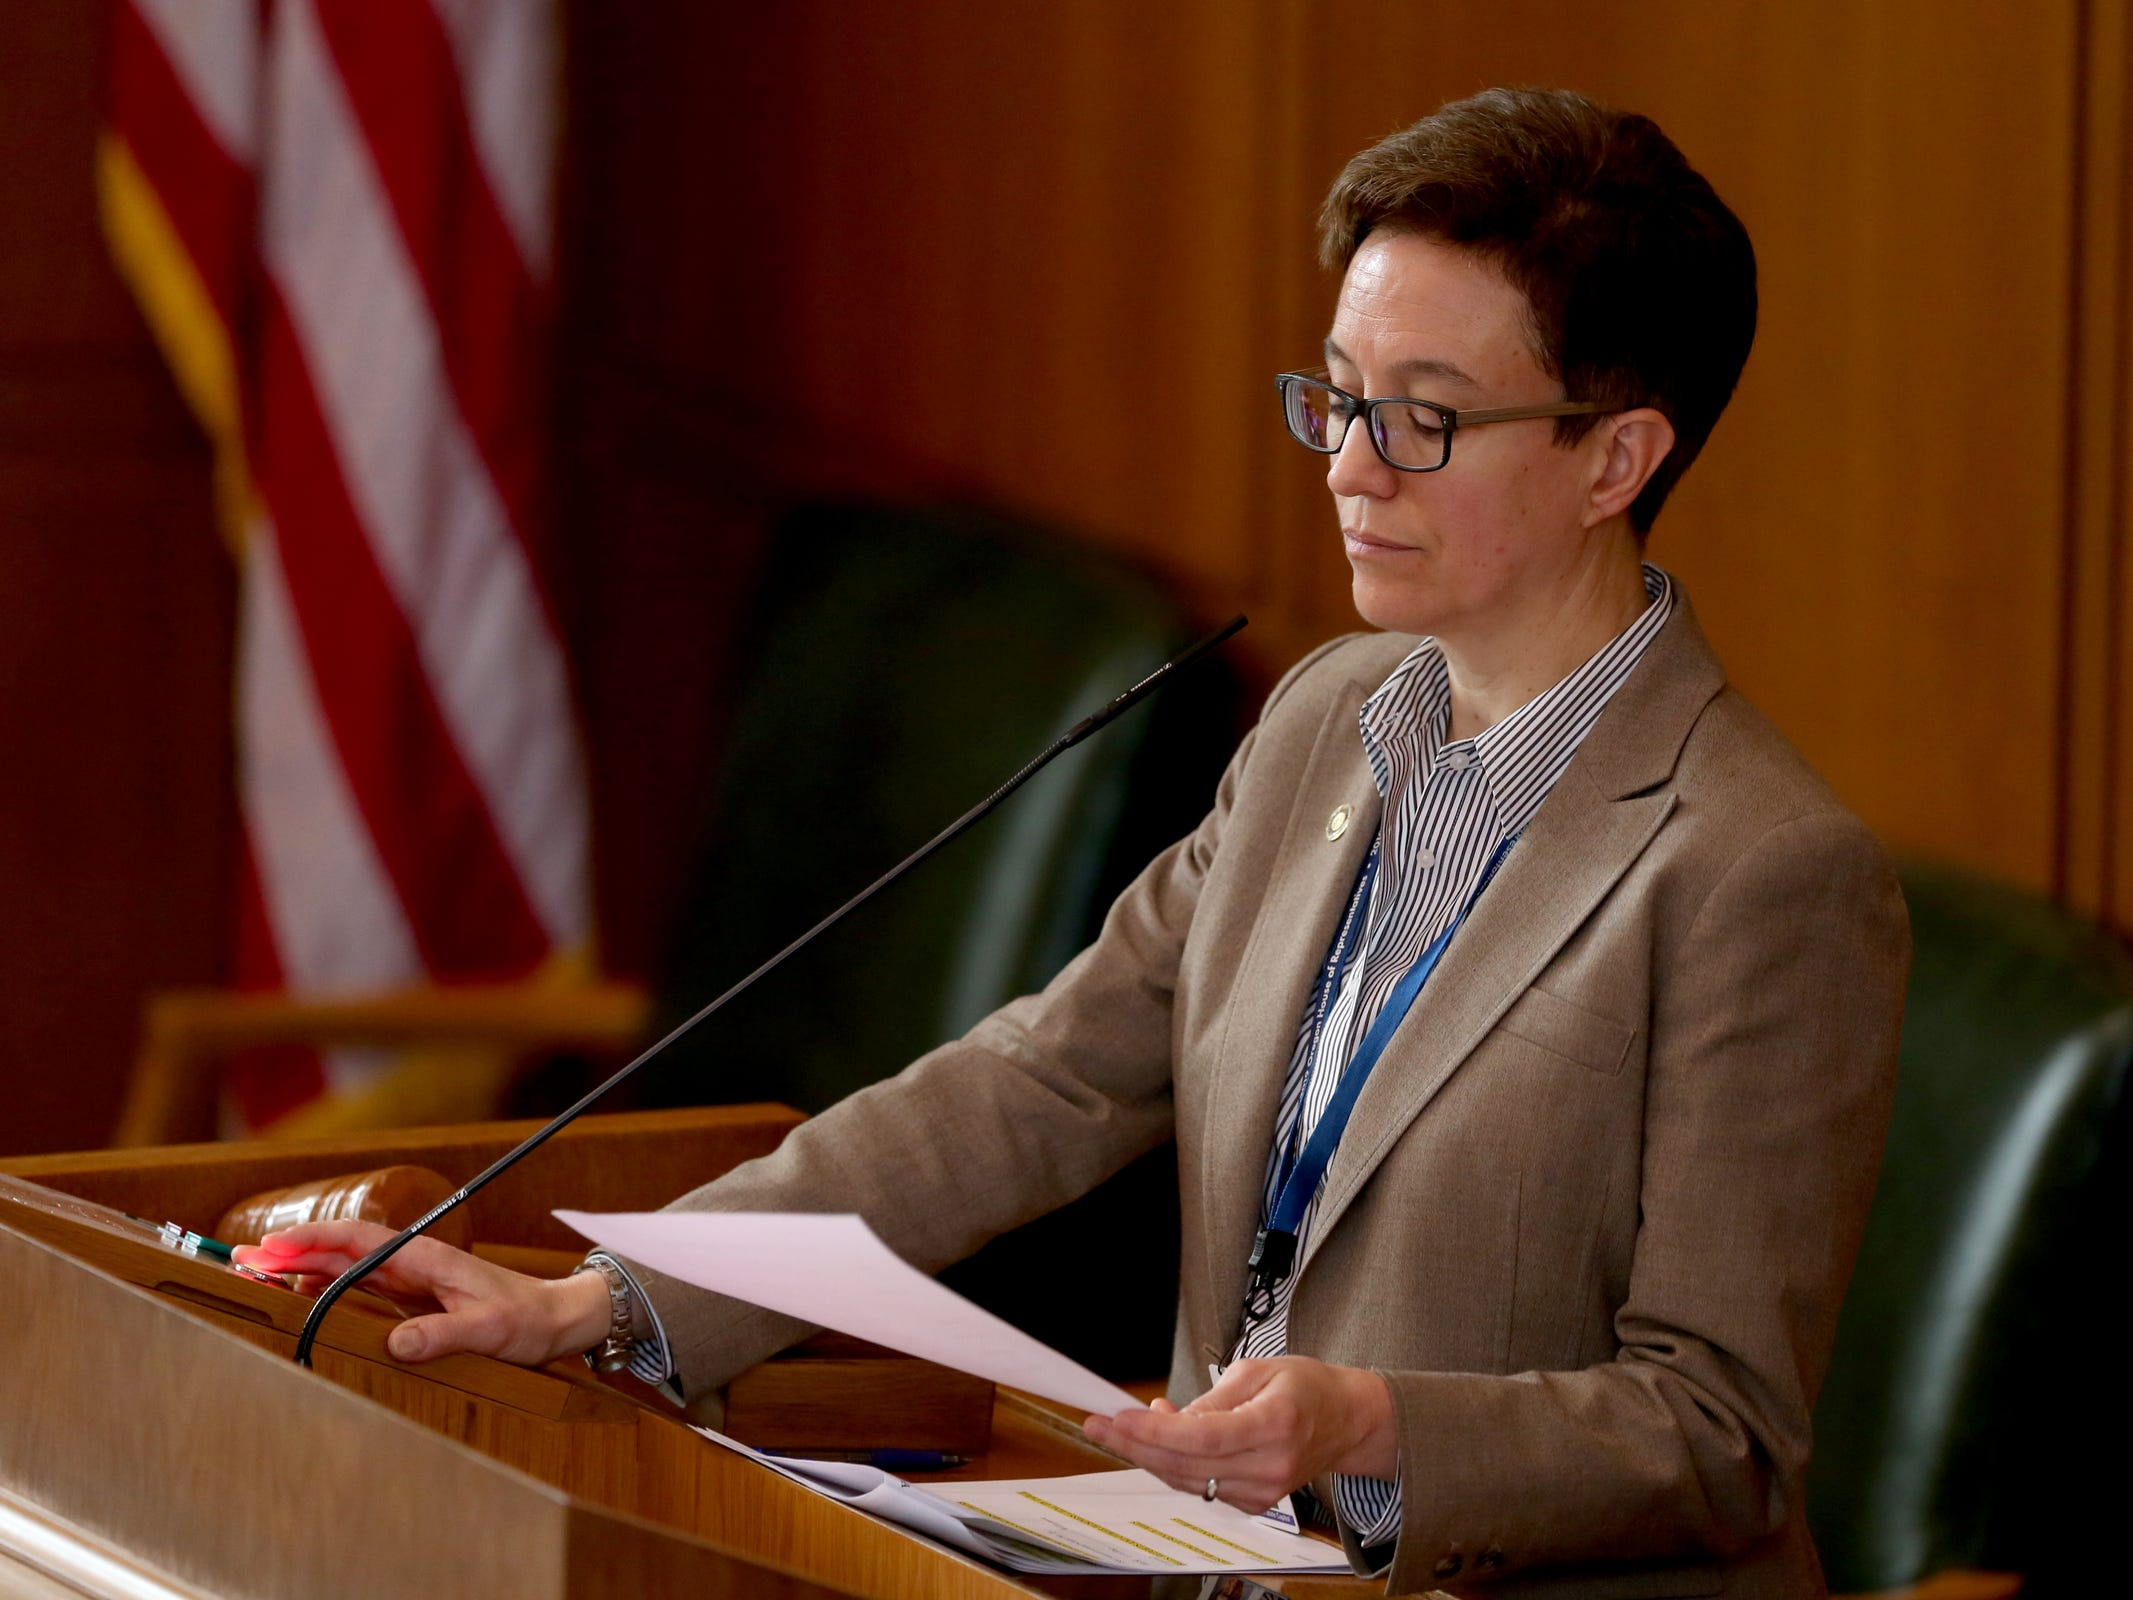 Speaker Tina Kotek, D-Portland, leads the House of Representatives as they prepare to vote on Senate Bill 608 at the Oregon State Capitol in Salem on Tuesday, Feb. 26, 2019. The House approved the rent control bill to end no-cause evictions for many tenants and cap rent increases across the state.